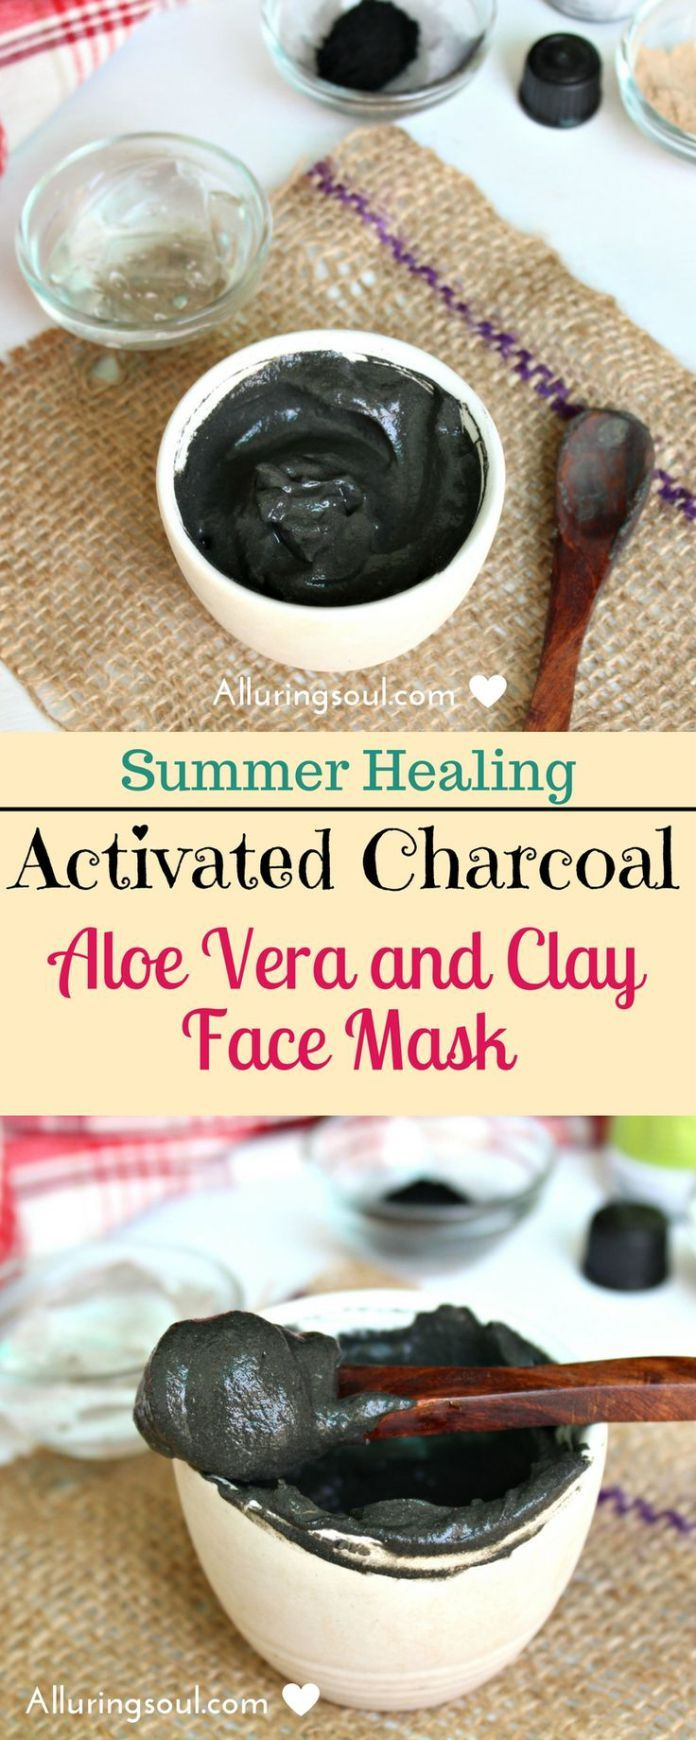 Natural & DIY Skin Care : Activated charcoal face mask can heal your sunburnt skin with gentle exfoliation